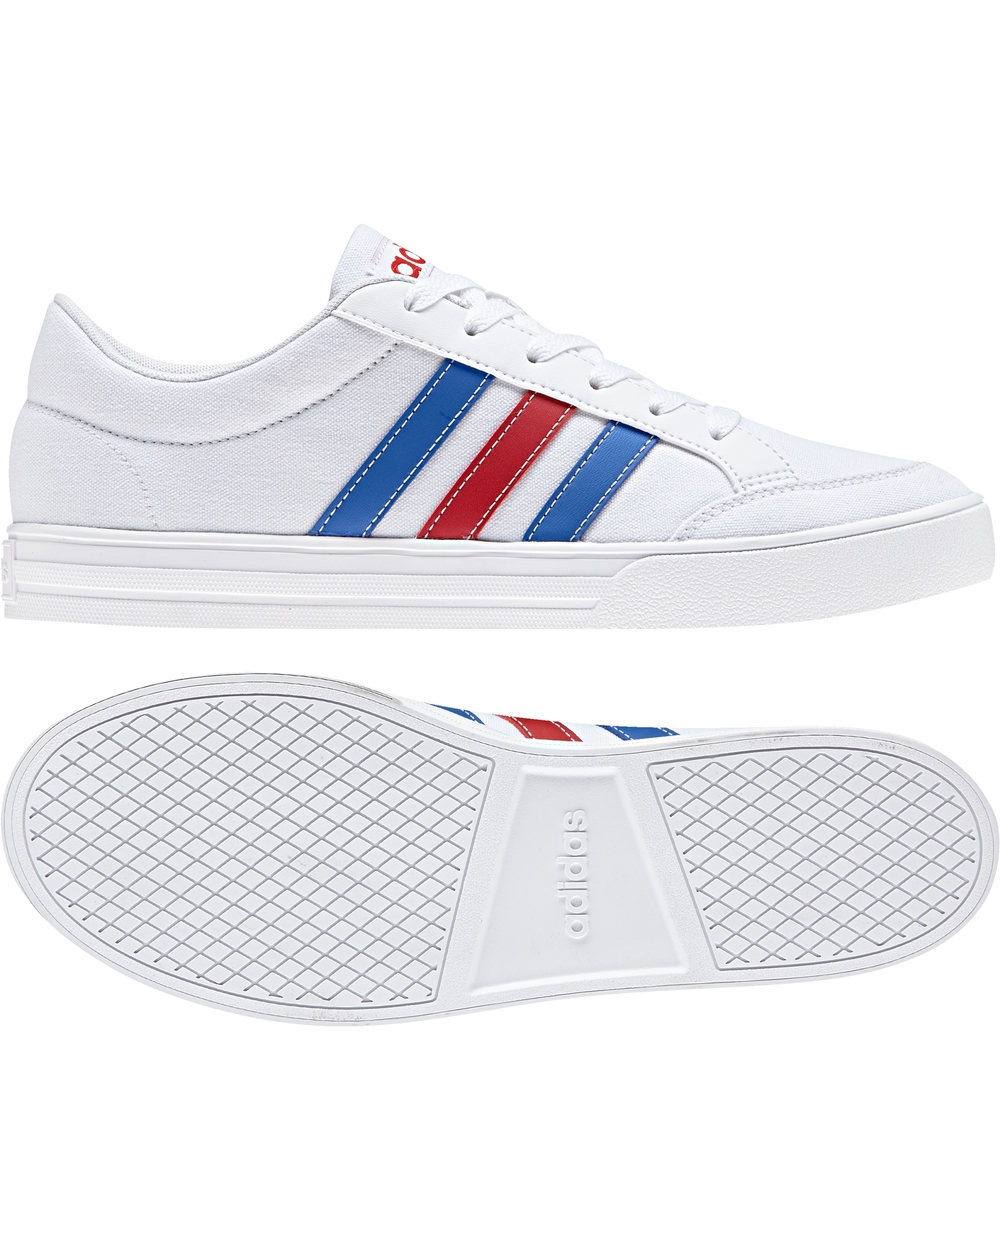 Adidas-Sneakers-Shoes-Trainers-Boots-Schuhe-Sport-White-